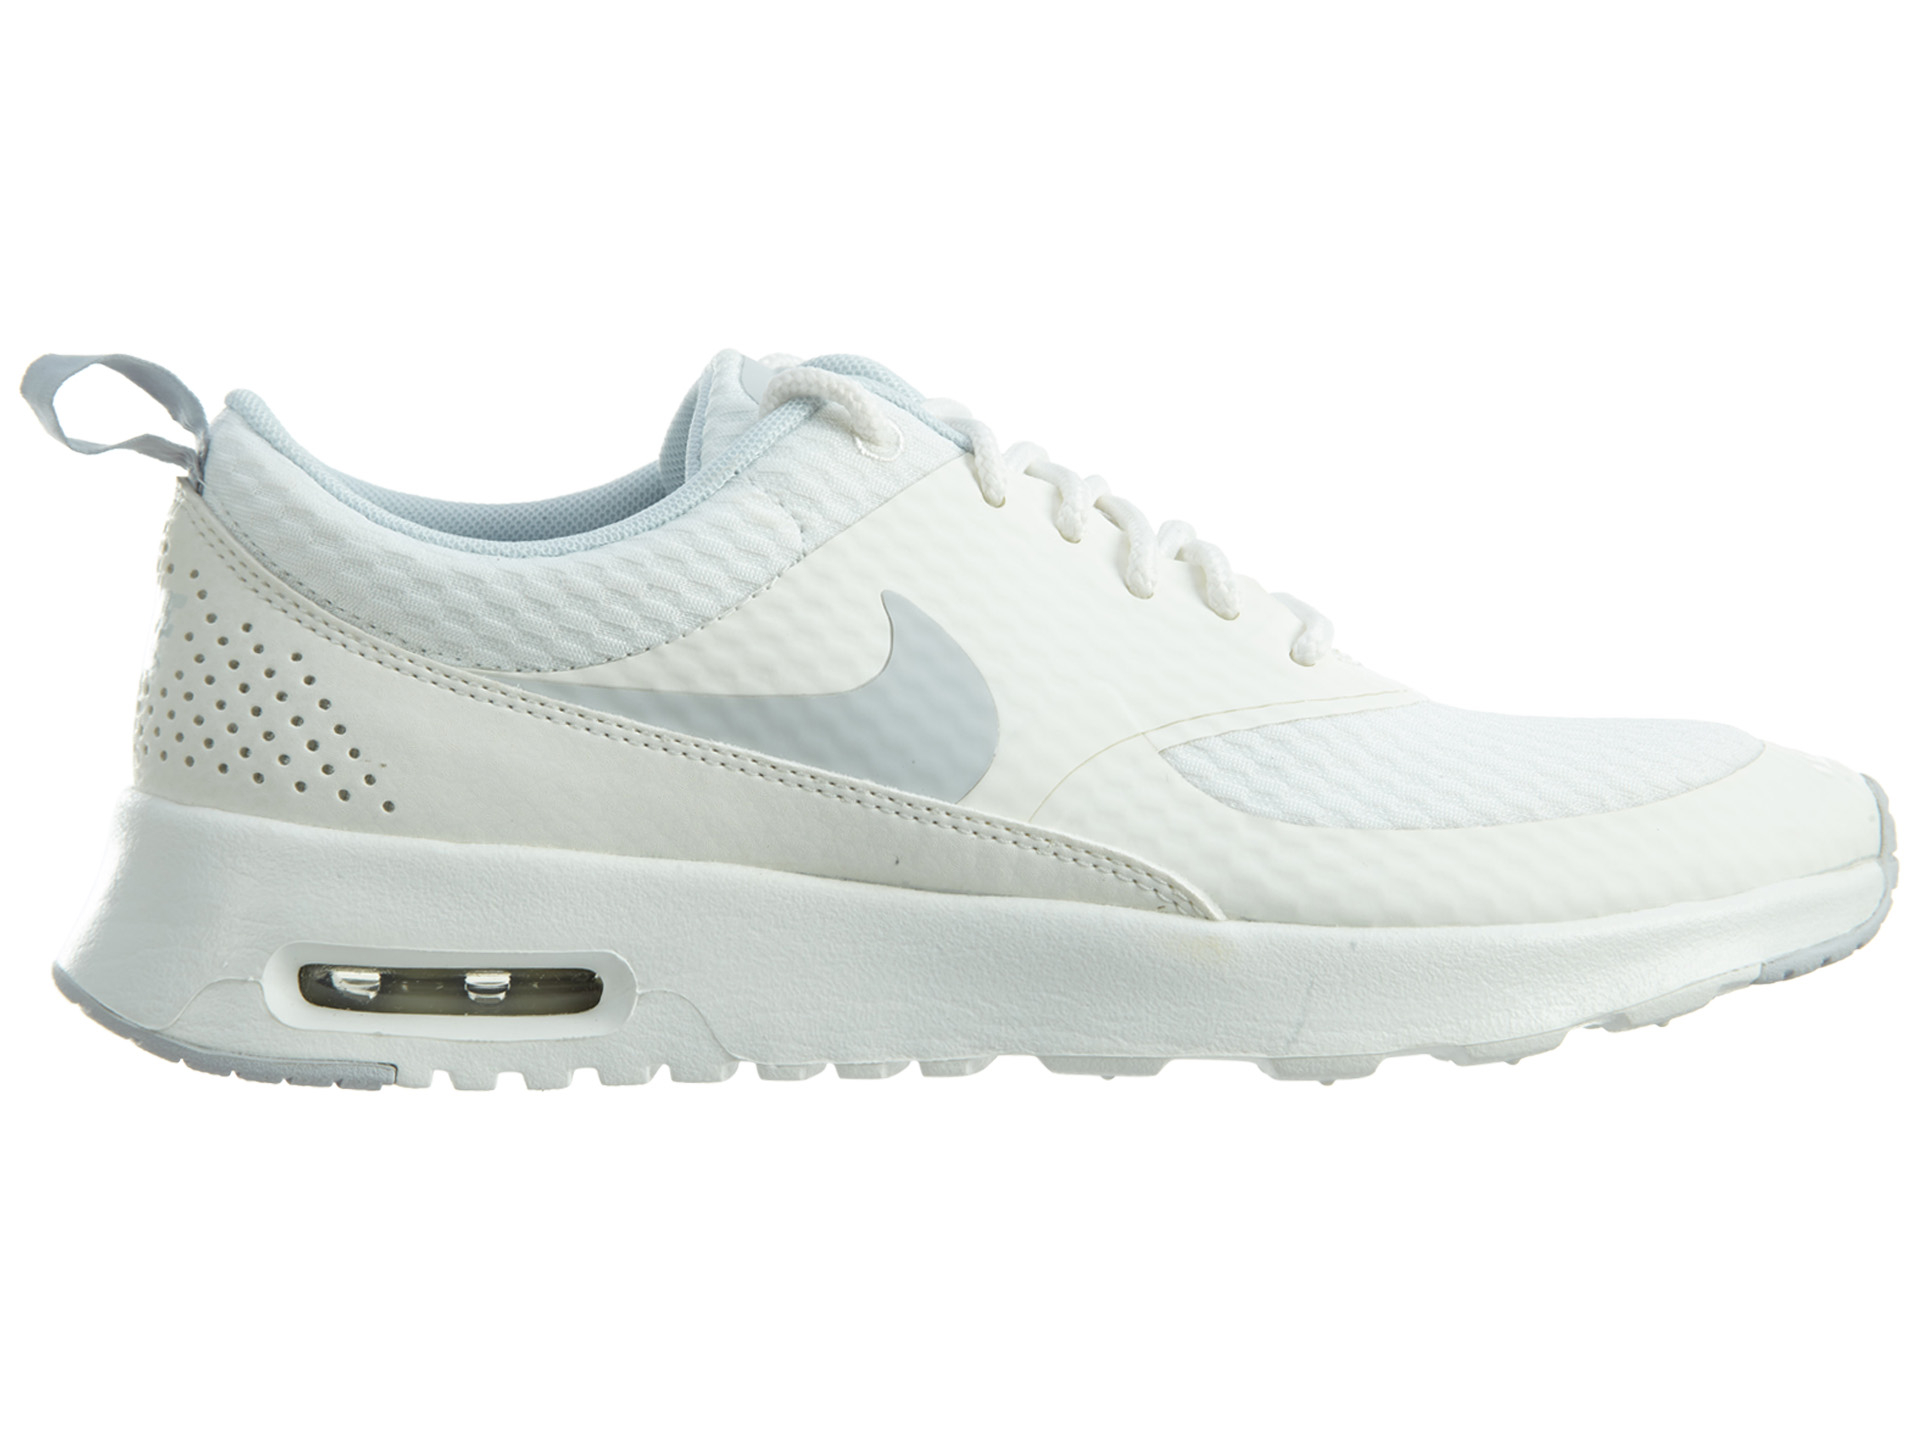 Nike Air Max Thea Txt Summit White Pure Platinum (W